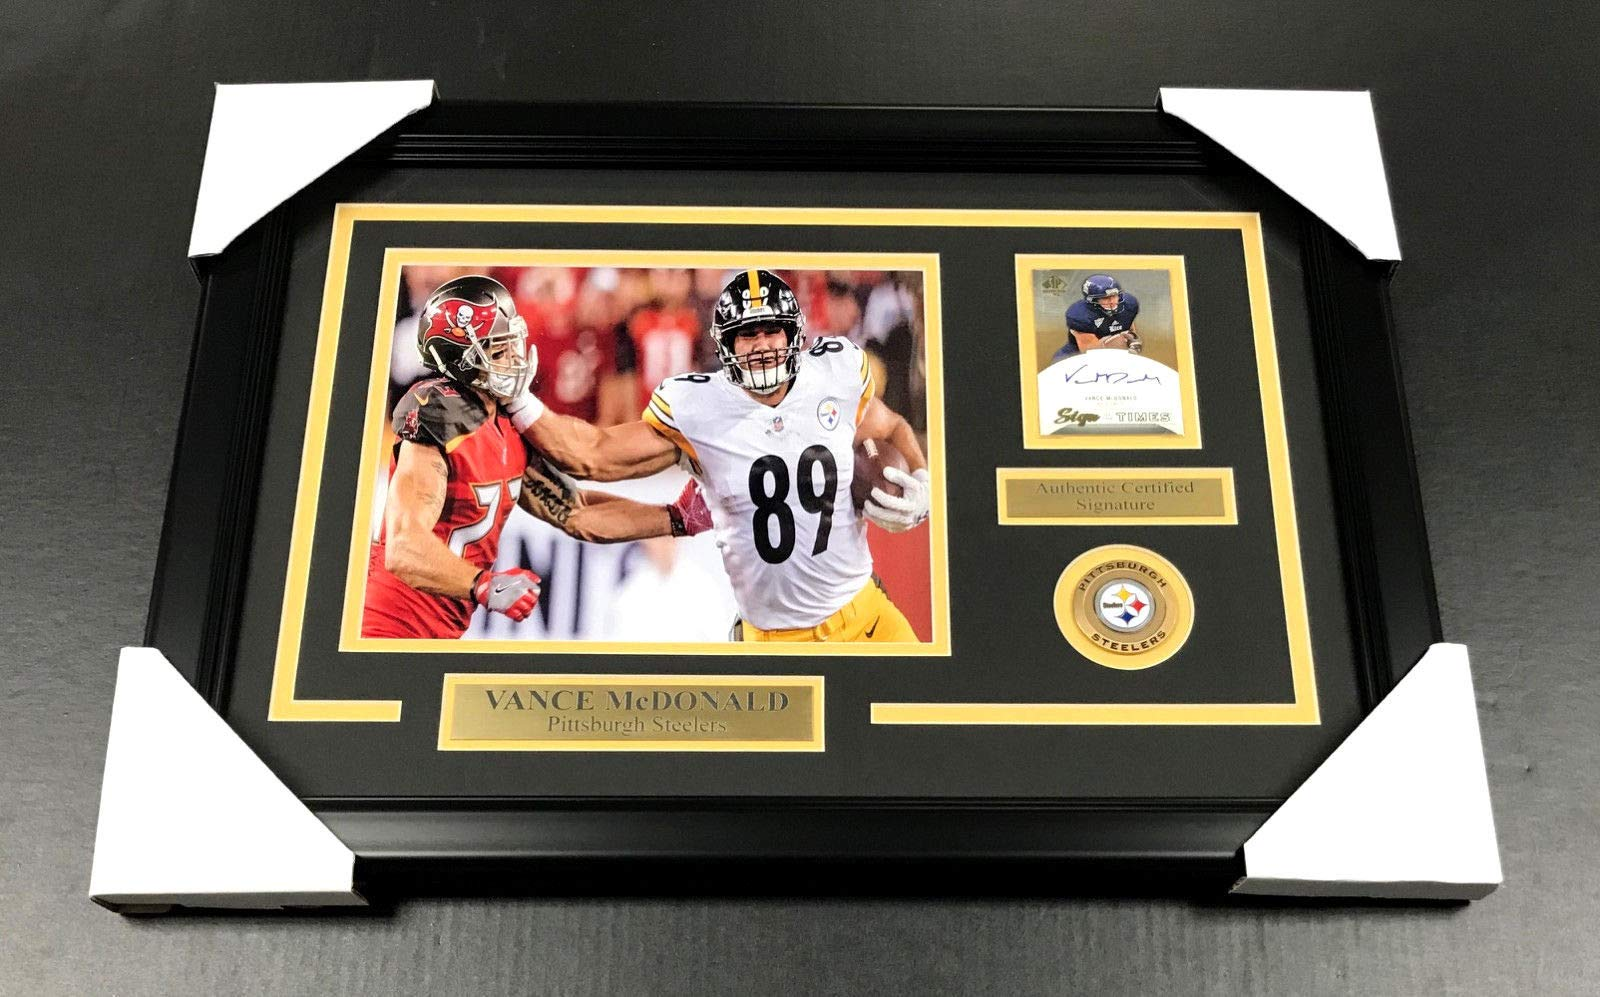 VANCE MCDONALD PITTSBURGH STEELERS AUTOGRAPHED CARD WITH 8X10 Photo Framed